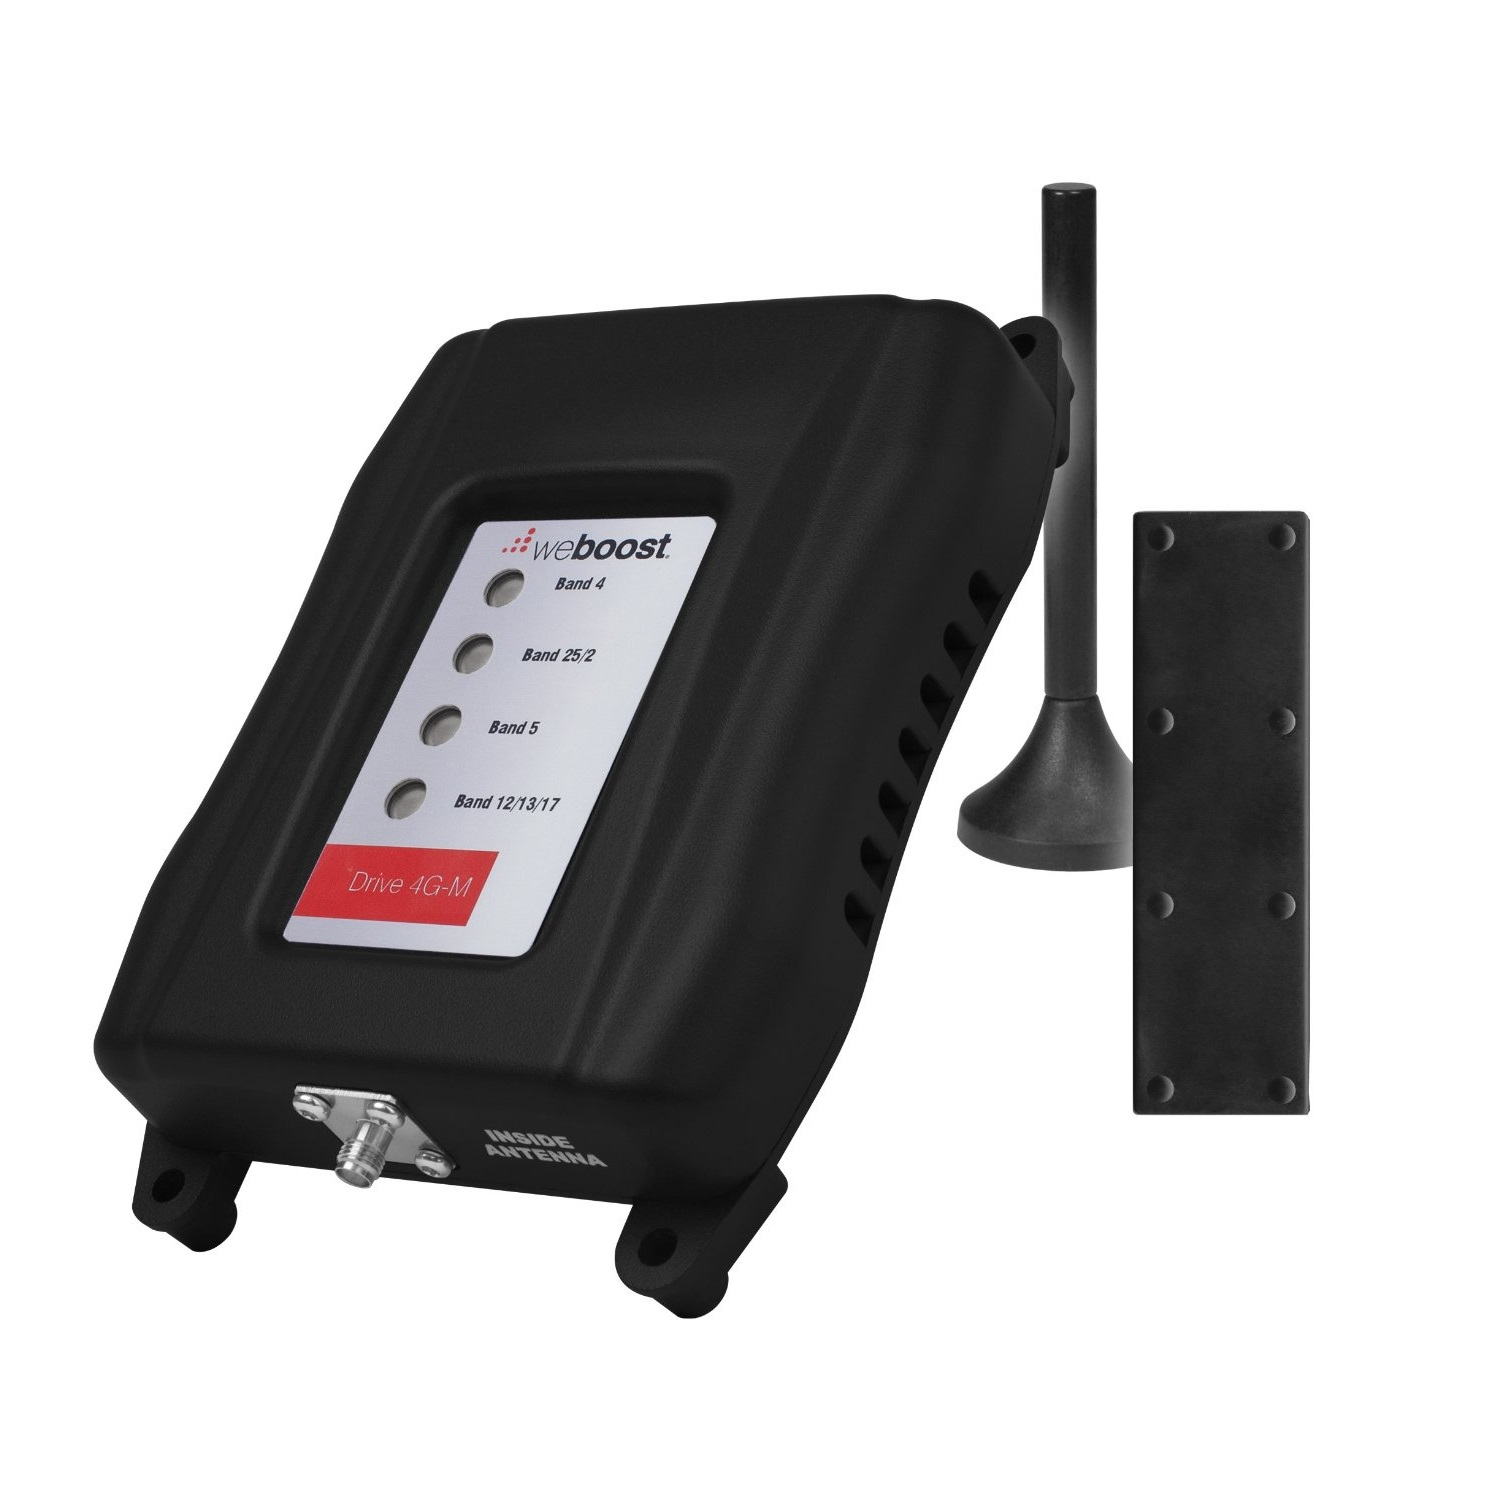 Wilson Electronics Weboost Cell Phone Signal Booster: Dri...